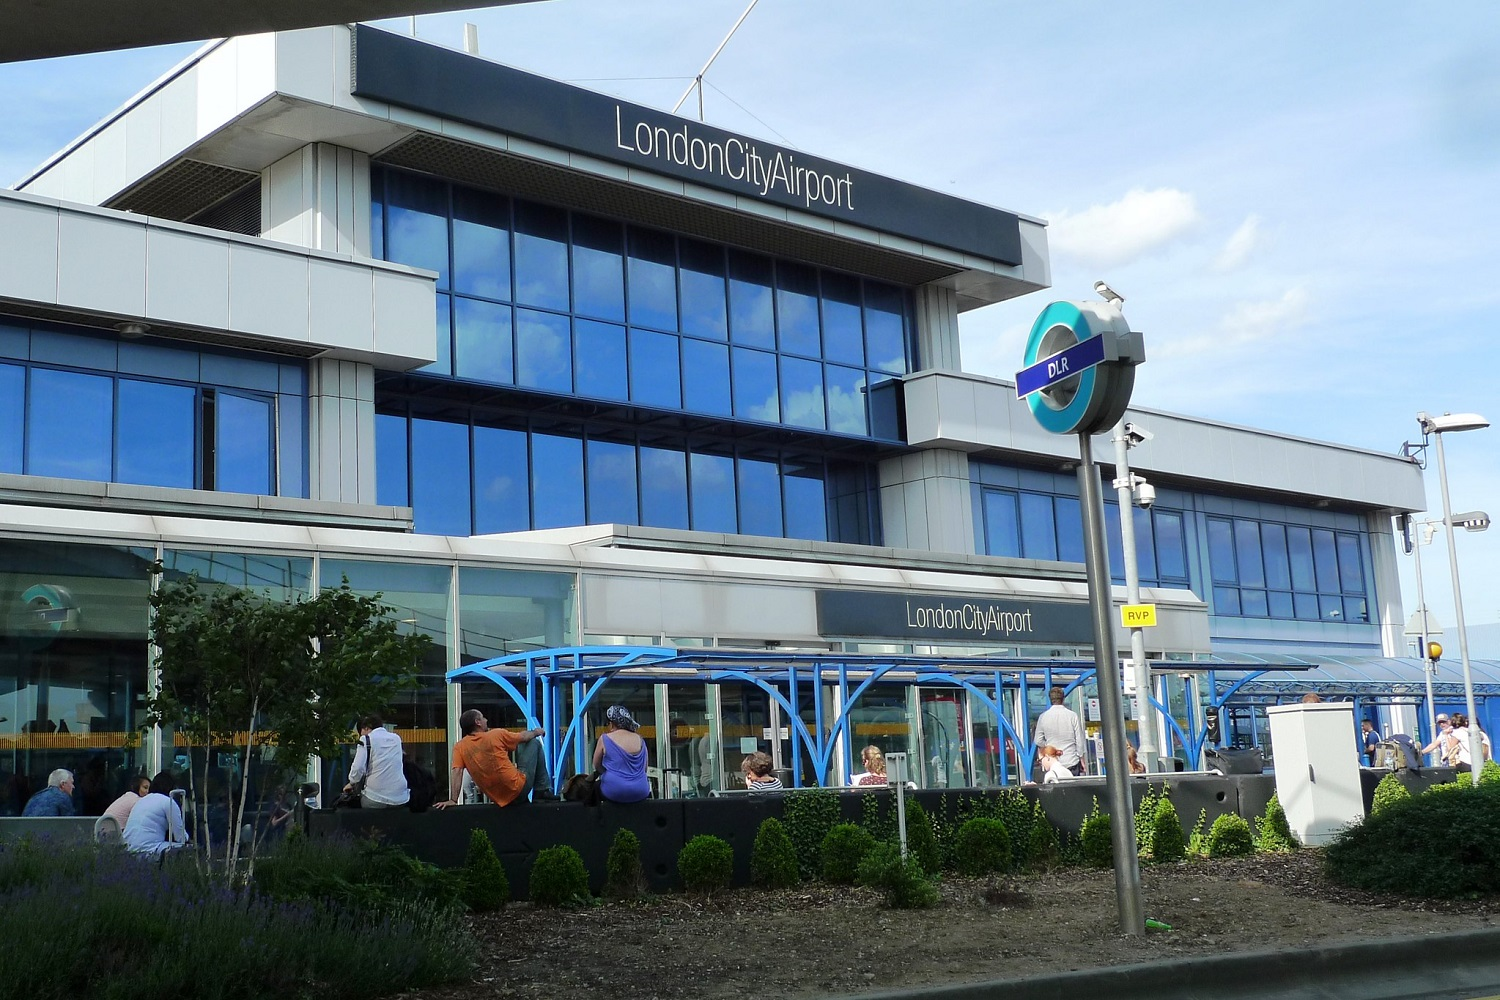 Image of the exterior of London City Airport.